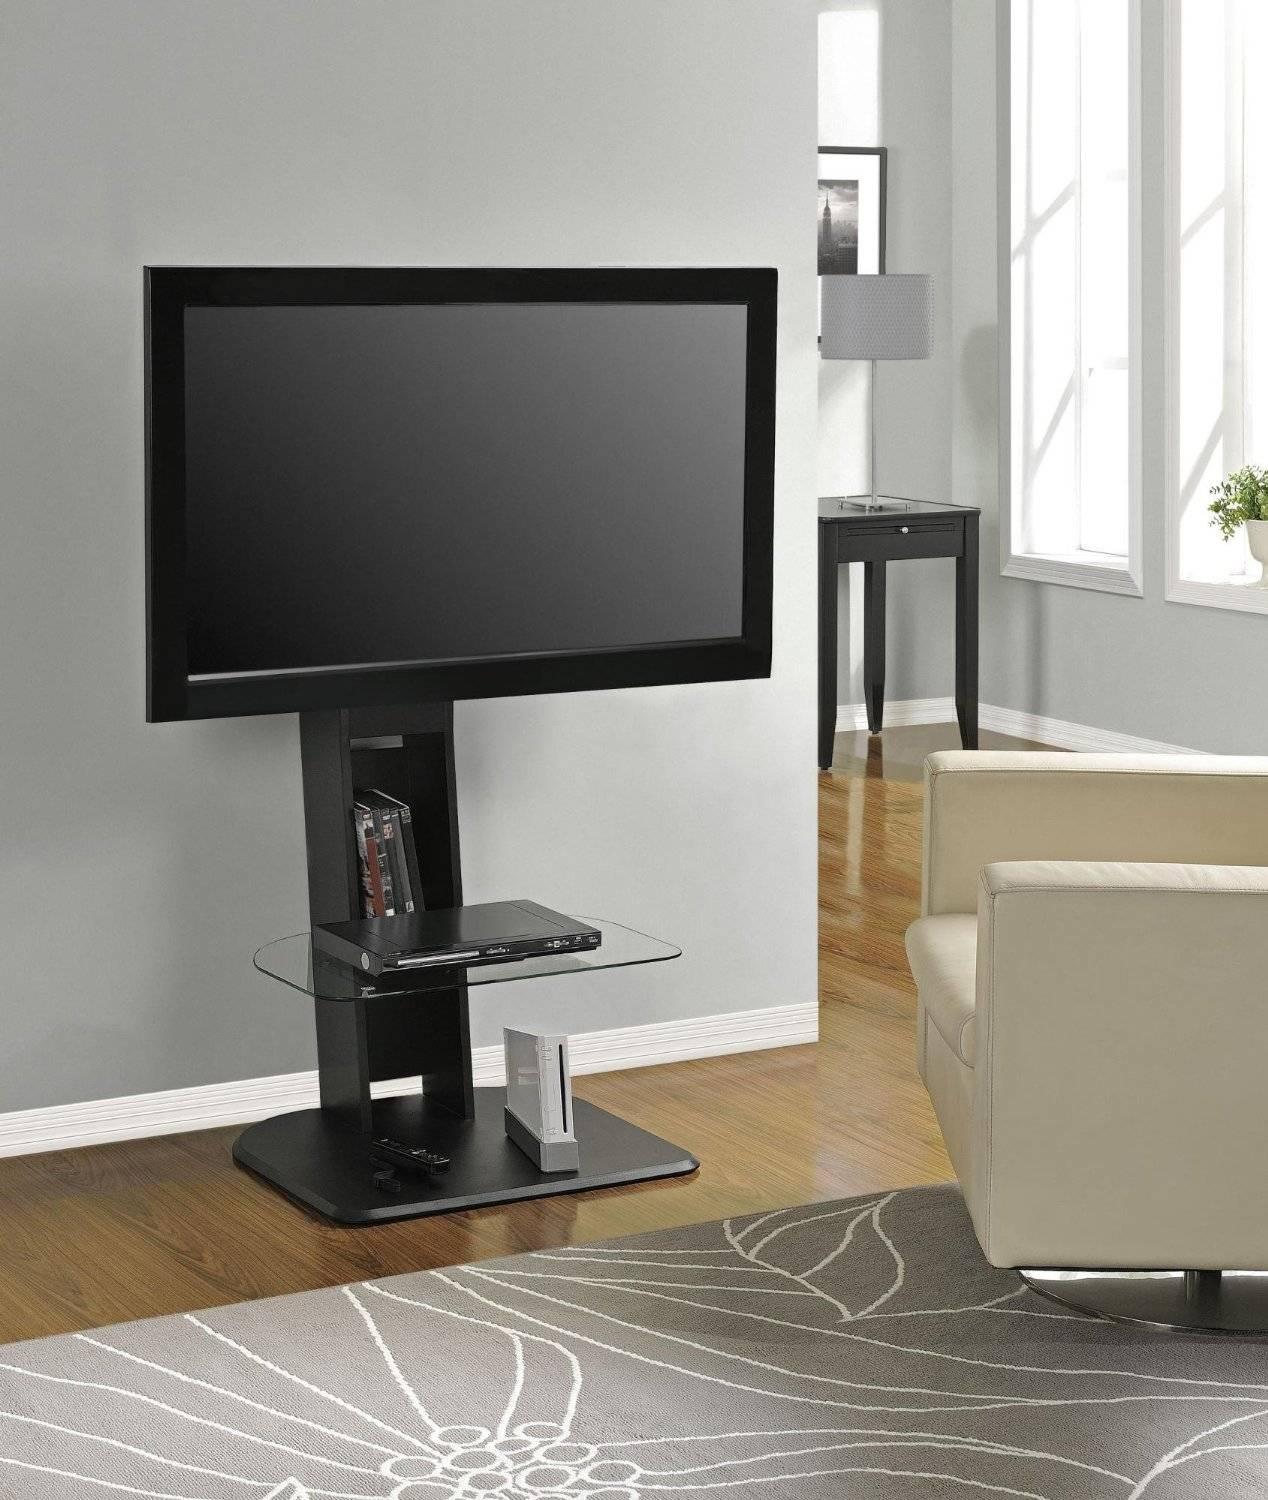 Outstanding Modern Corner Tv Stand And Contemporary Trends Images with regard to Cheap Corner Tv Stands For Flat Screen (Image 8 of 15)